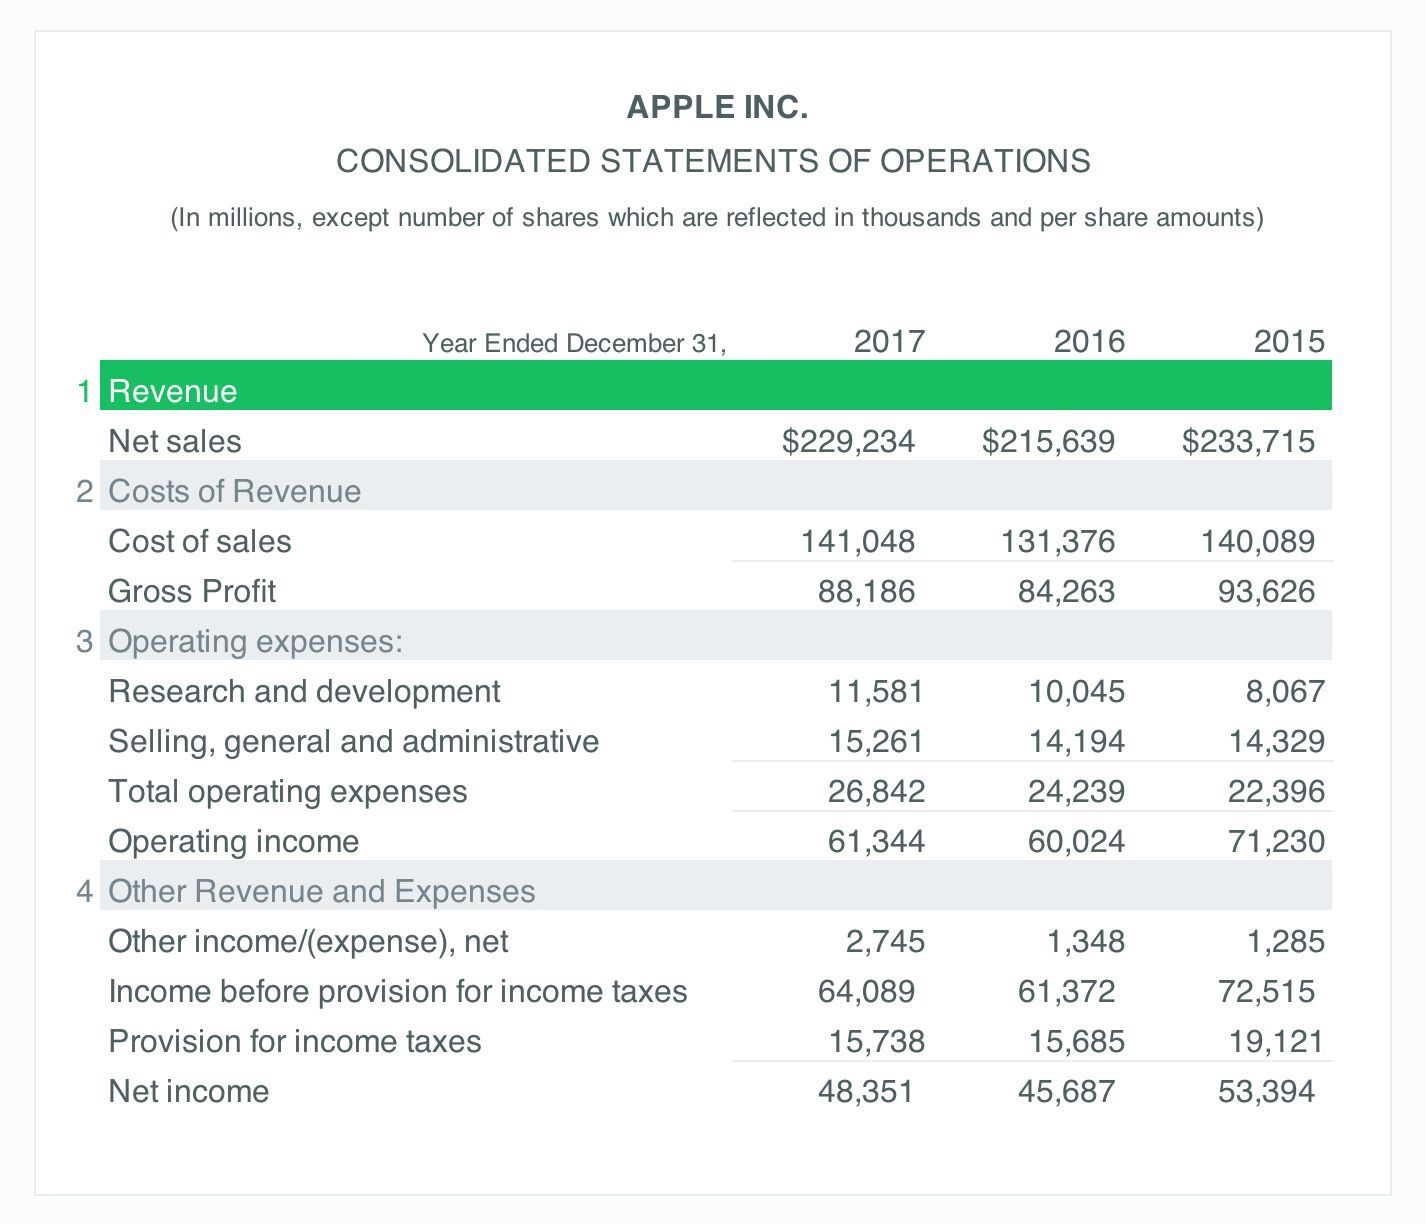 001 Magnificent Income Statement Format In Excel Download Image Full